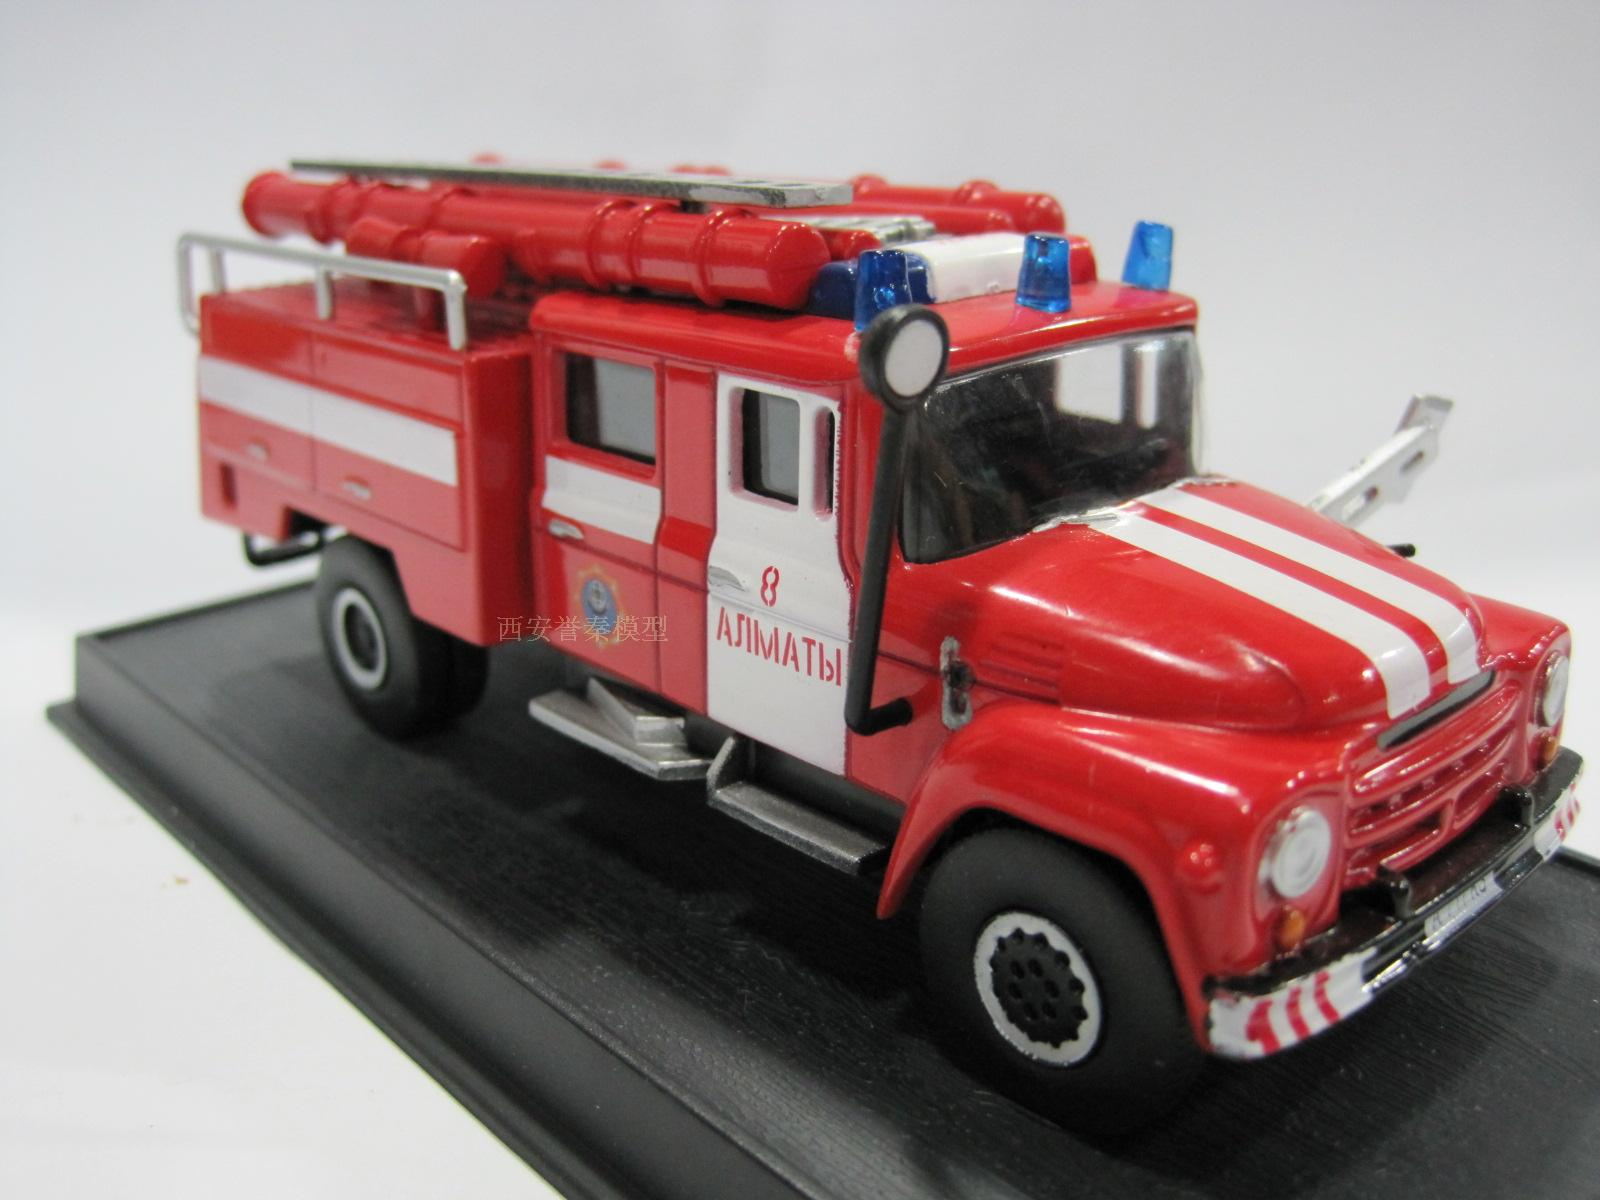 AMER 1/57 Scale 1964 ZiL 130-431410 Kazakhstan Fire Engine Diecast Metal Car Model Toy For Gift/Collection